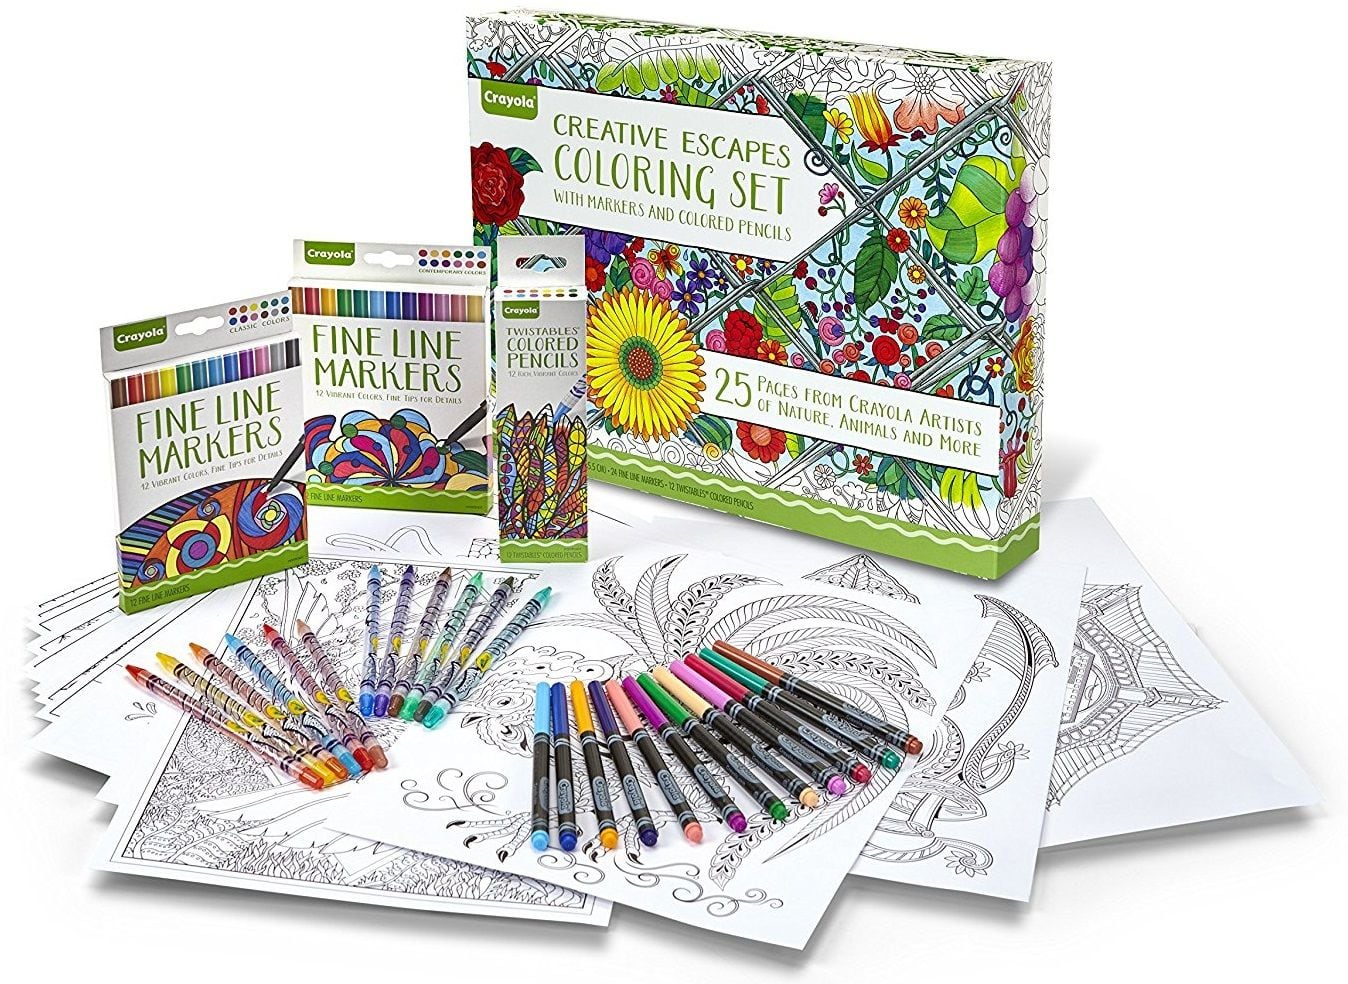 Add-On Item: Crayola Adult Coloring Book & Marker Art Activity Set ...